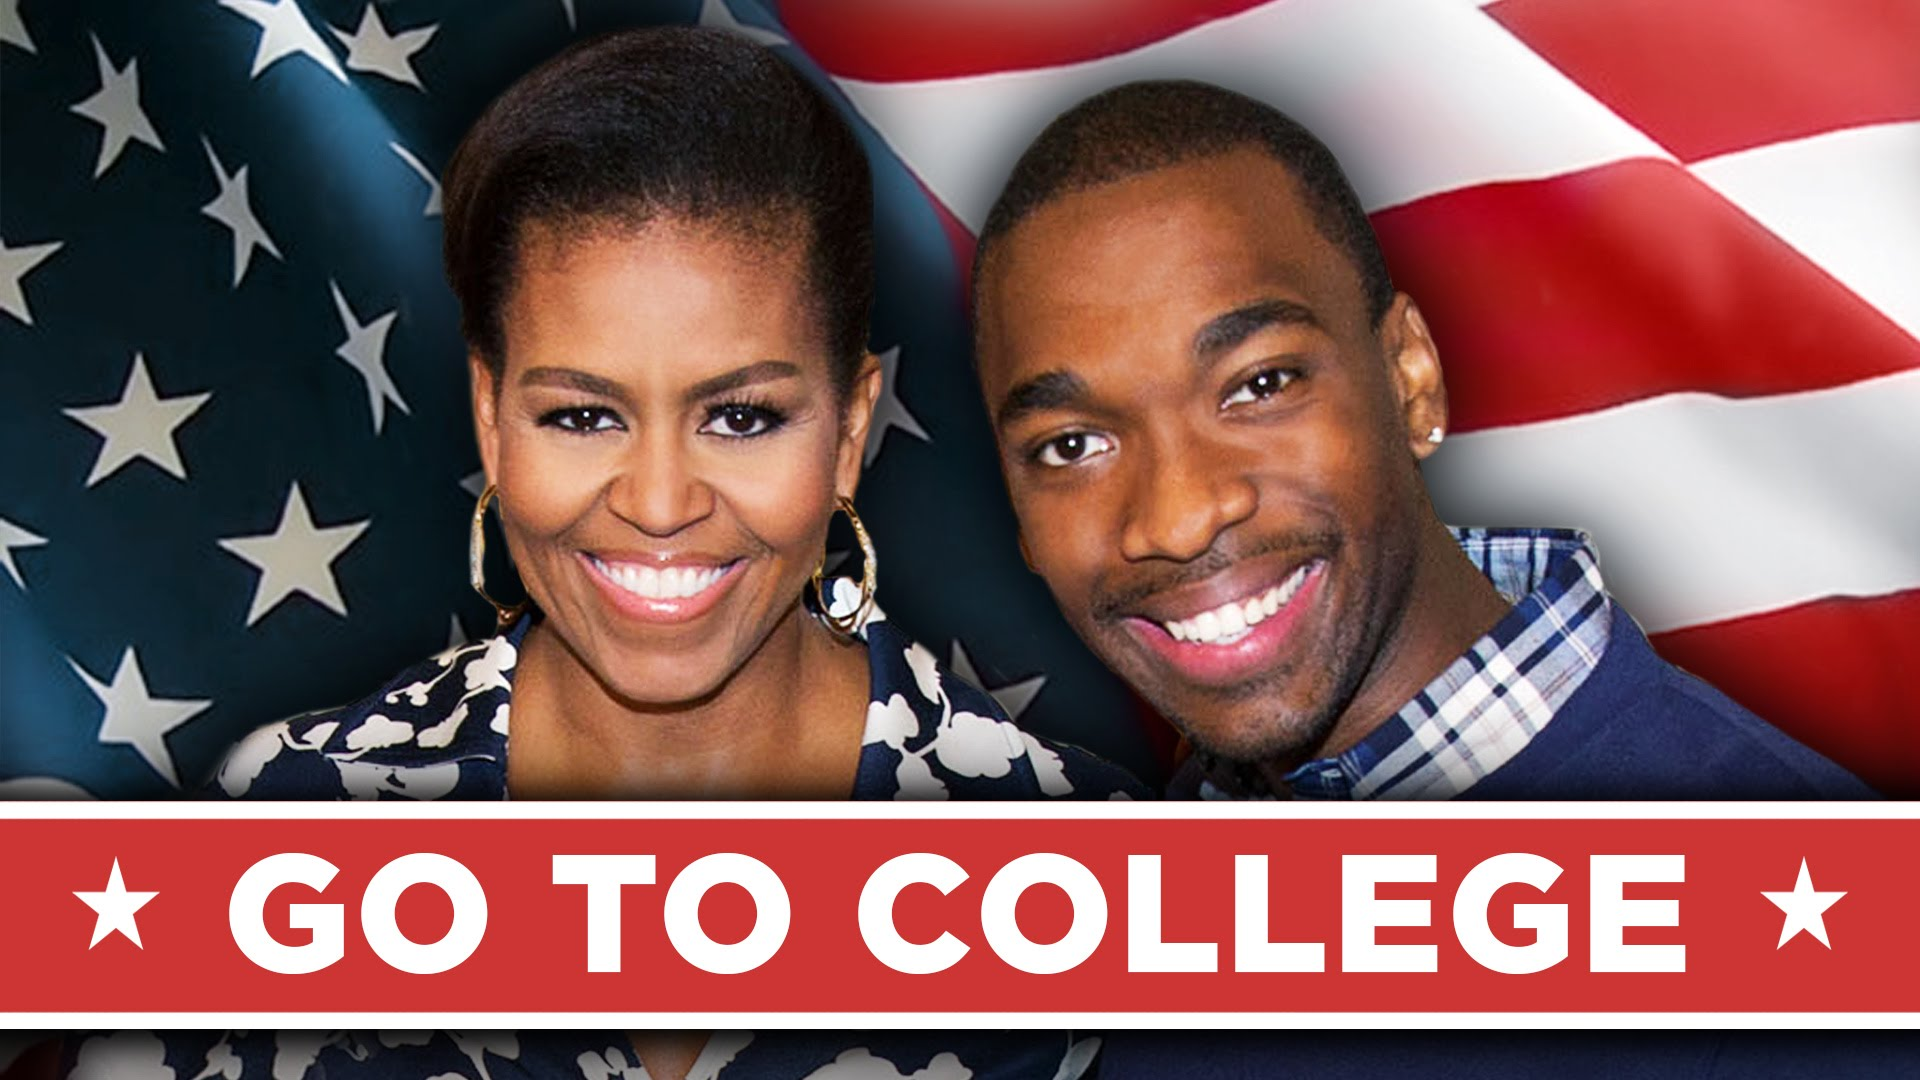 Go to College with Michelle Obama